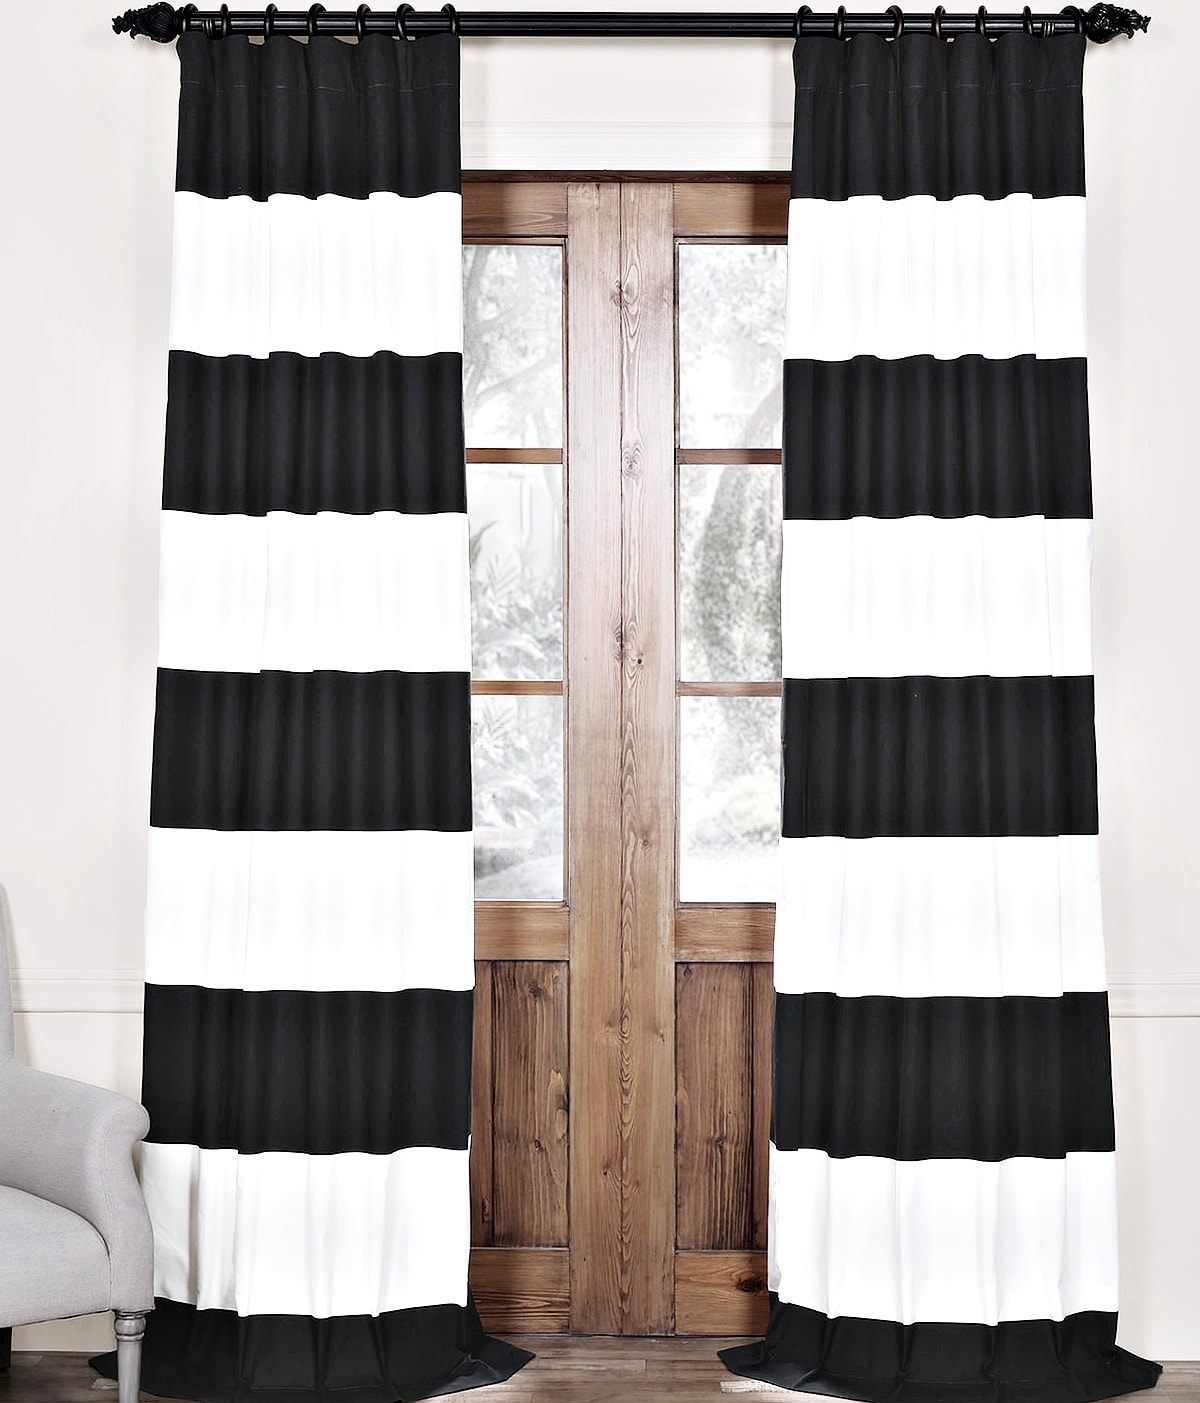 Black and white curtains - Black And White Horizontal Striped Curtains